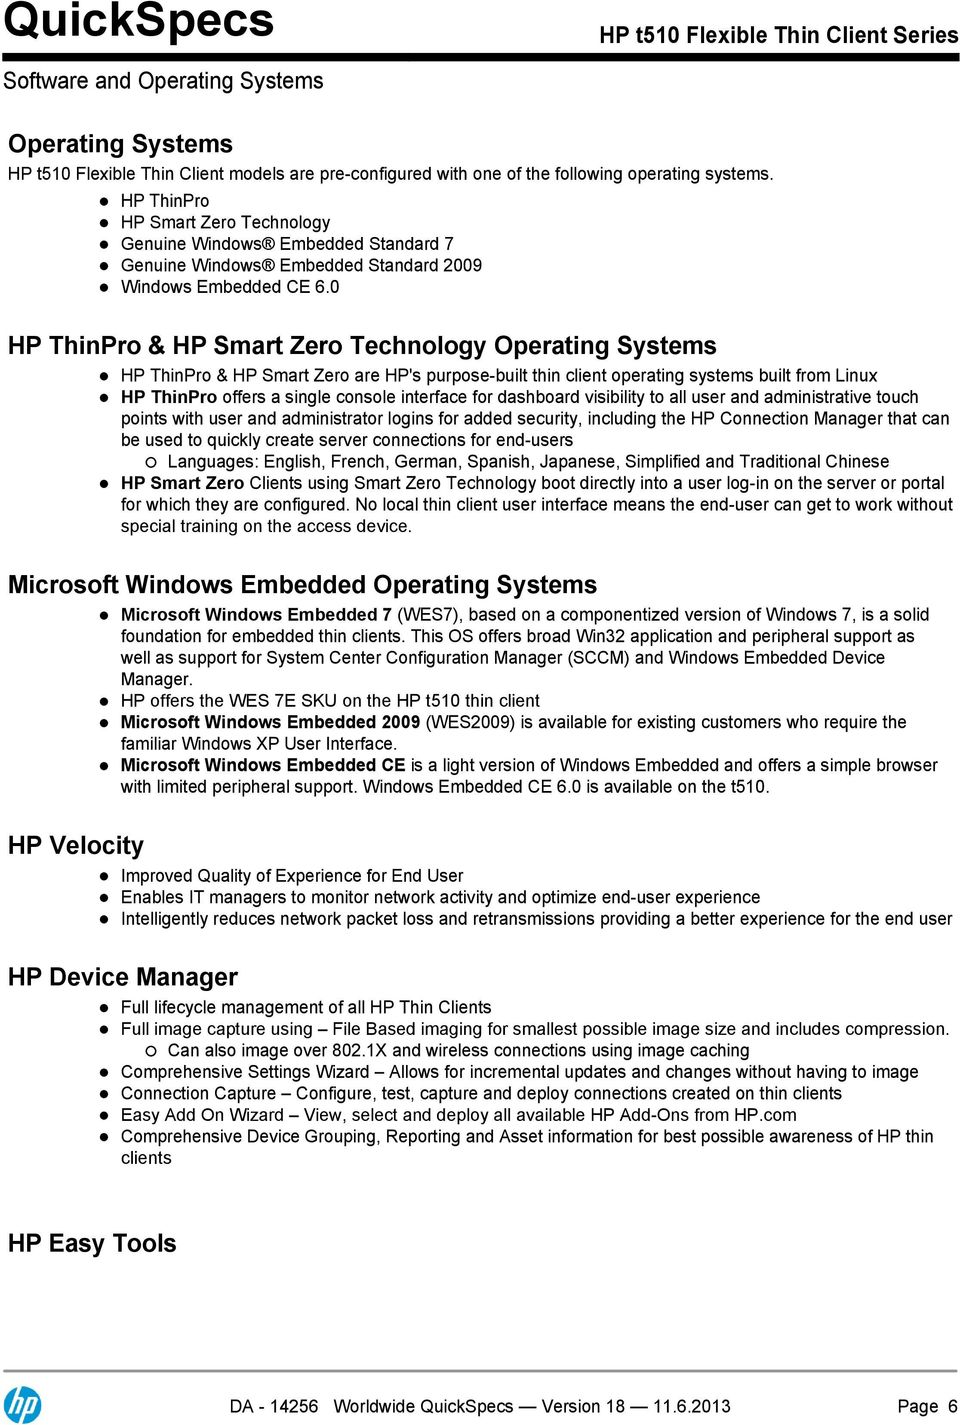 QuickSpecs  HP t510 Flexible Thin Client Series  Overview - PDF